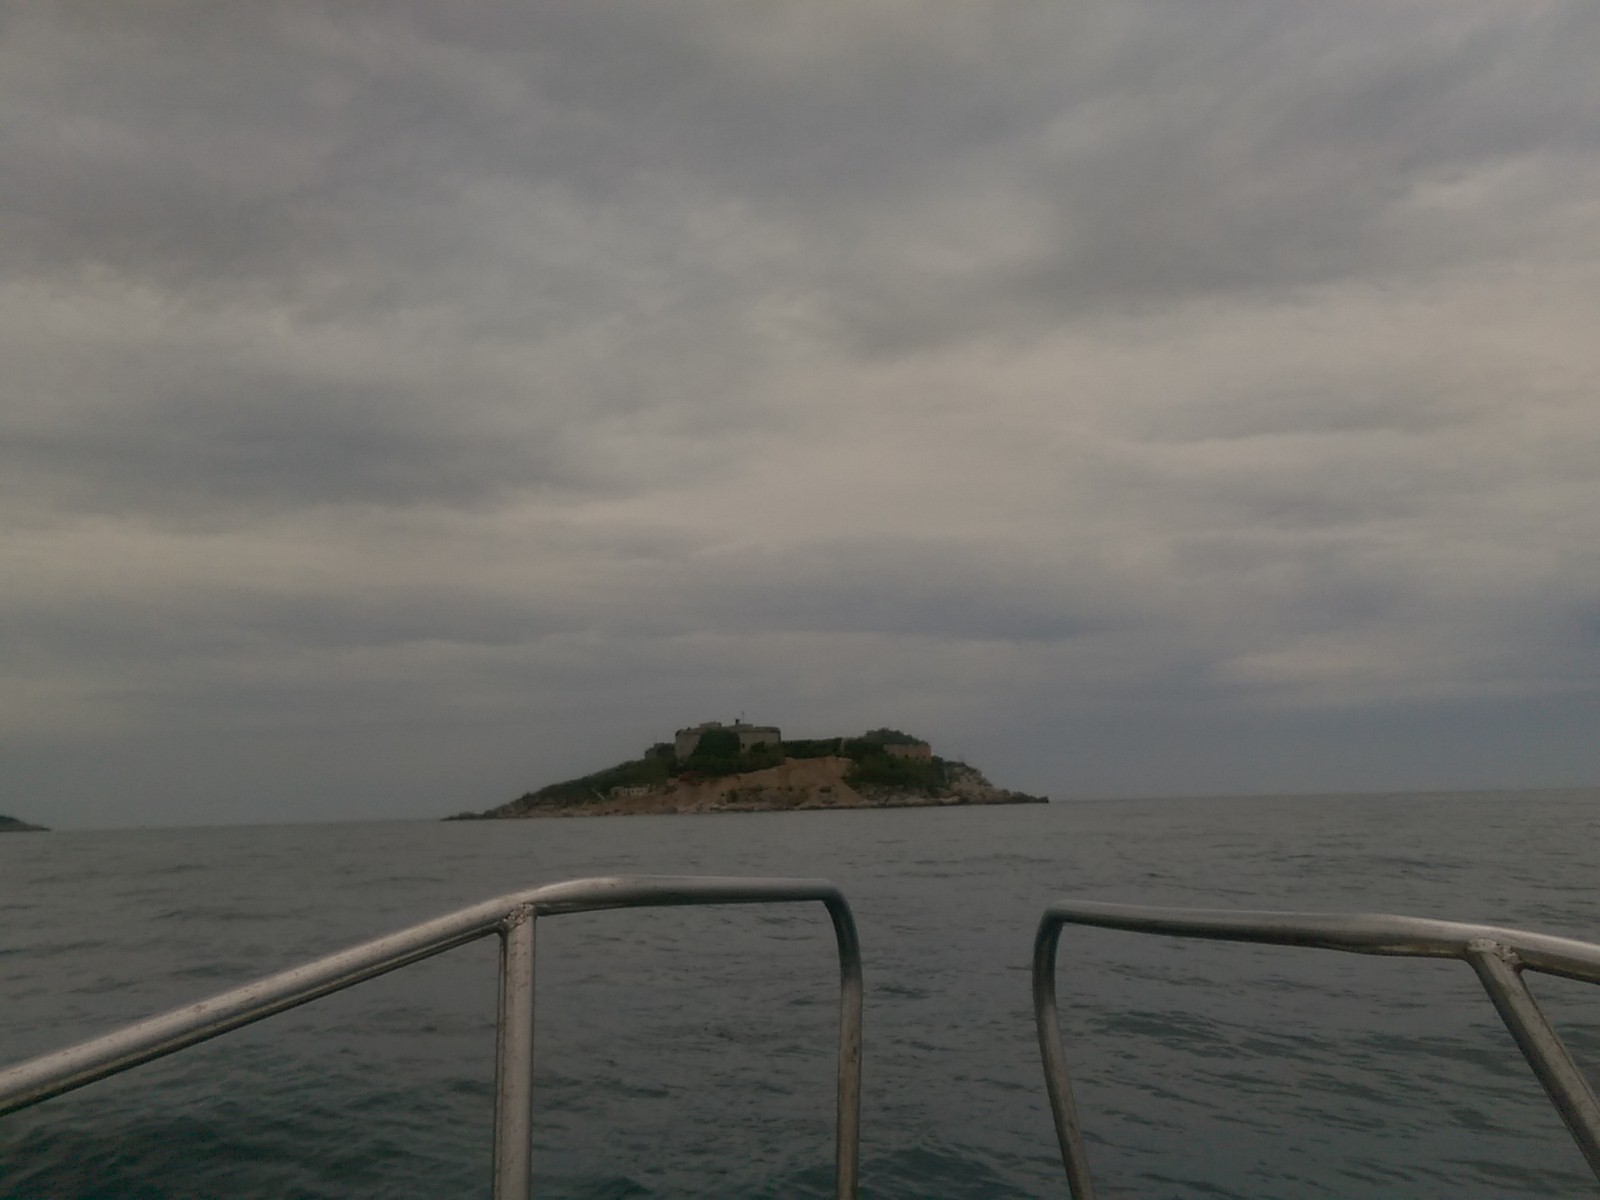 Handrails on the front of a boat in the foreground of moody grey sea with an island in the middle